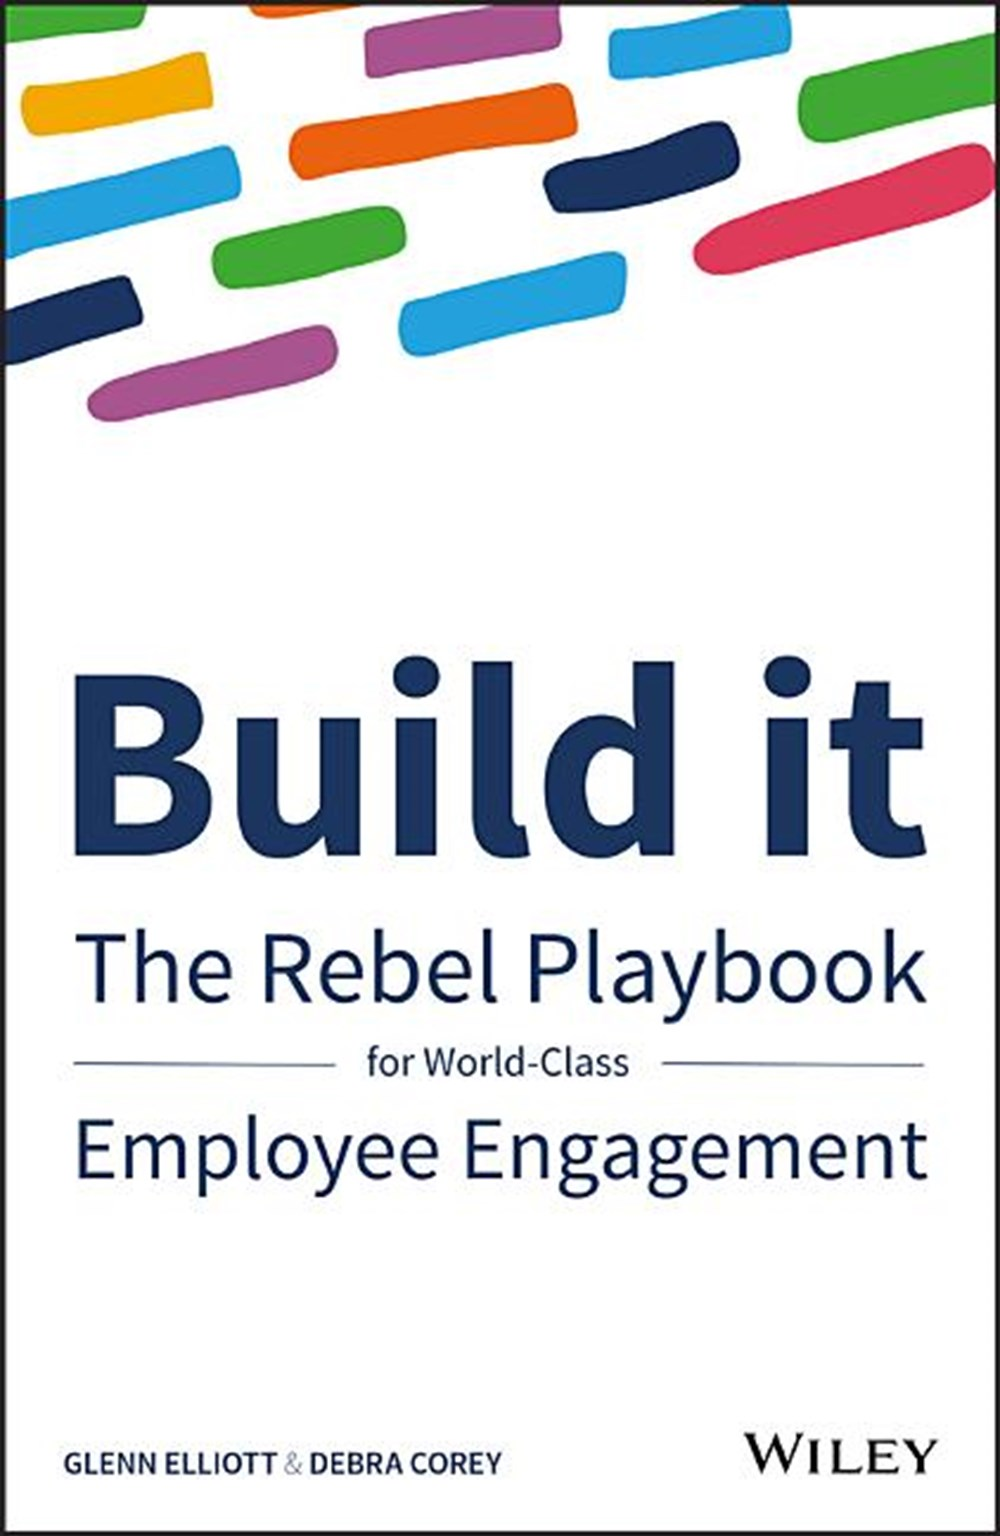 Build It The Rebel Playbook for World-Class Employee Engagement